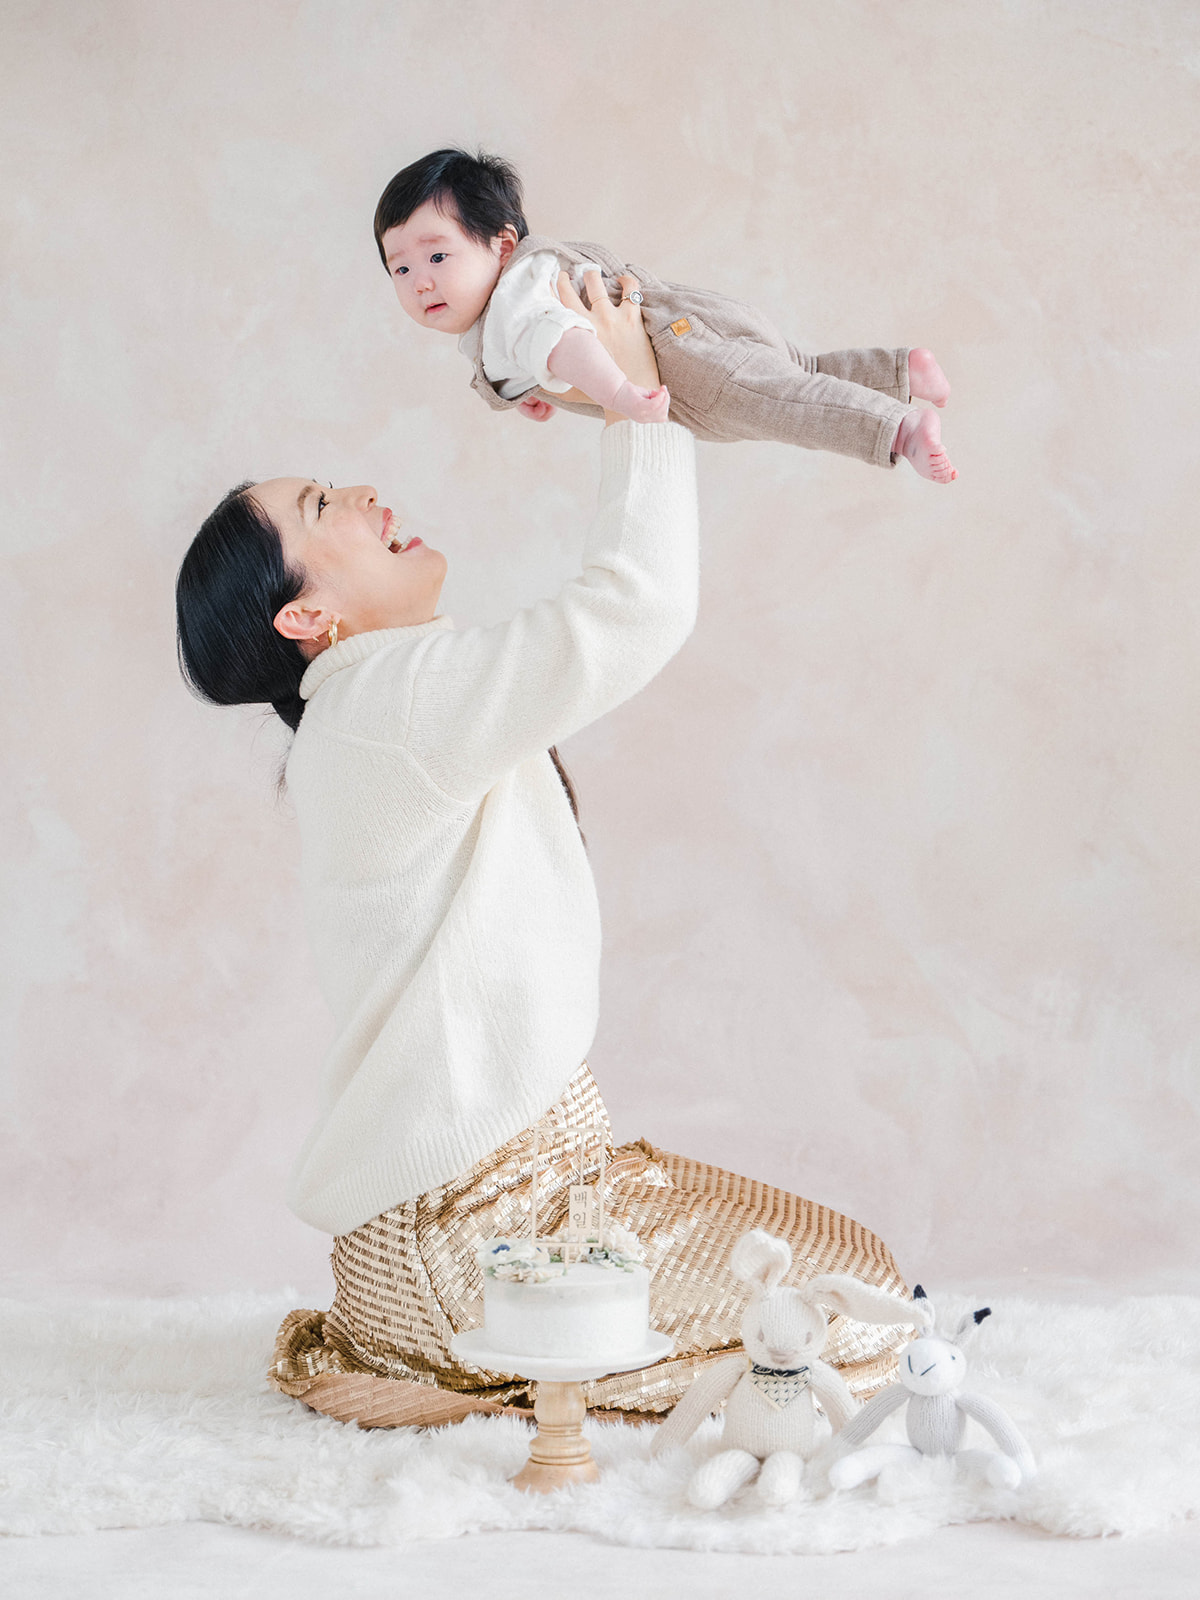 Mom kneeling and holding baby up high above her